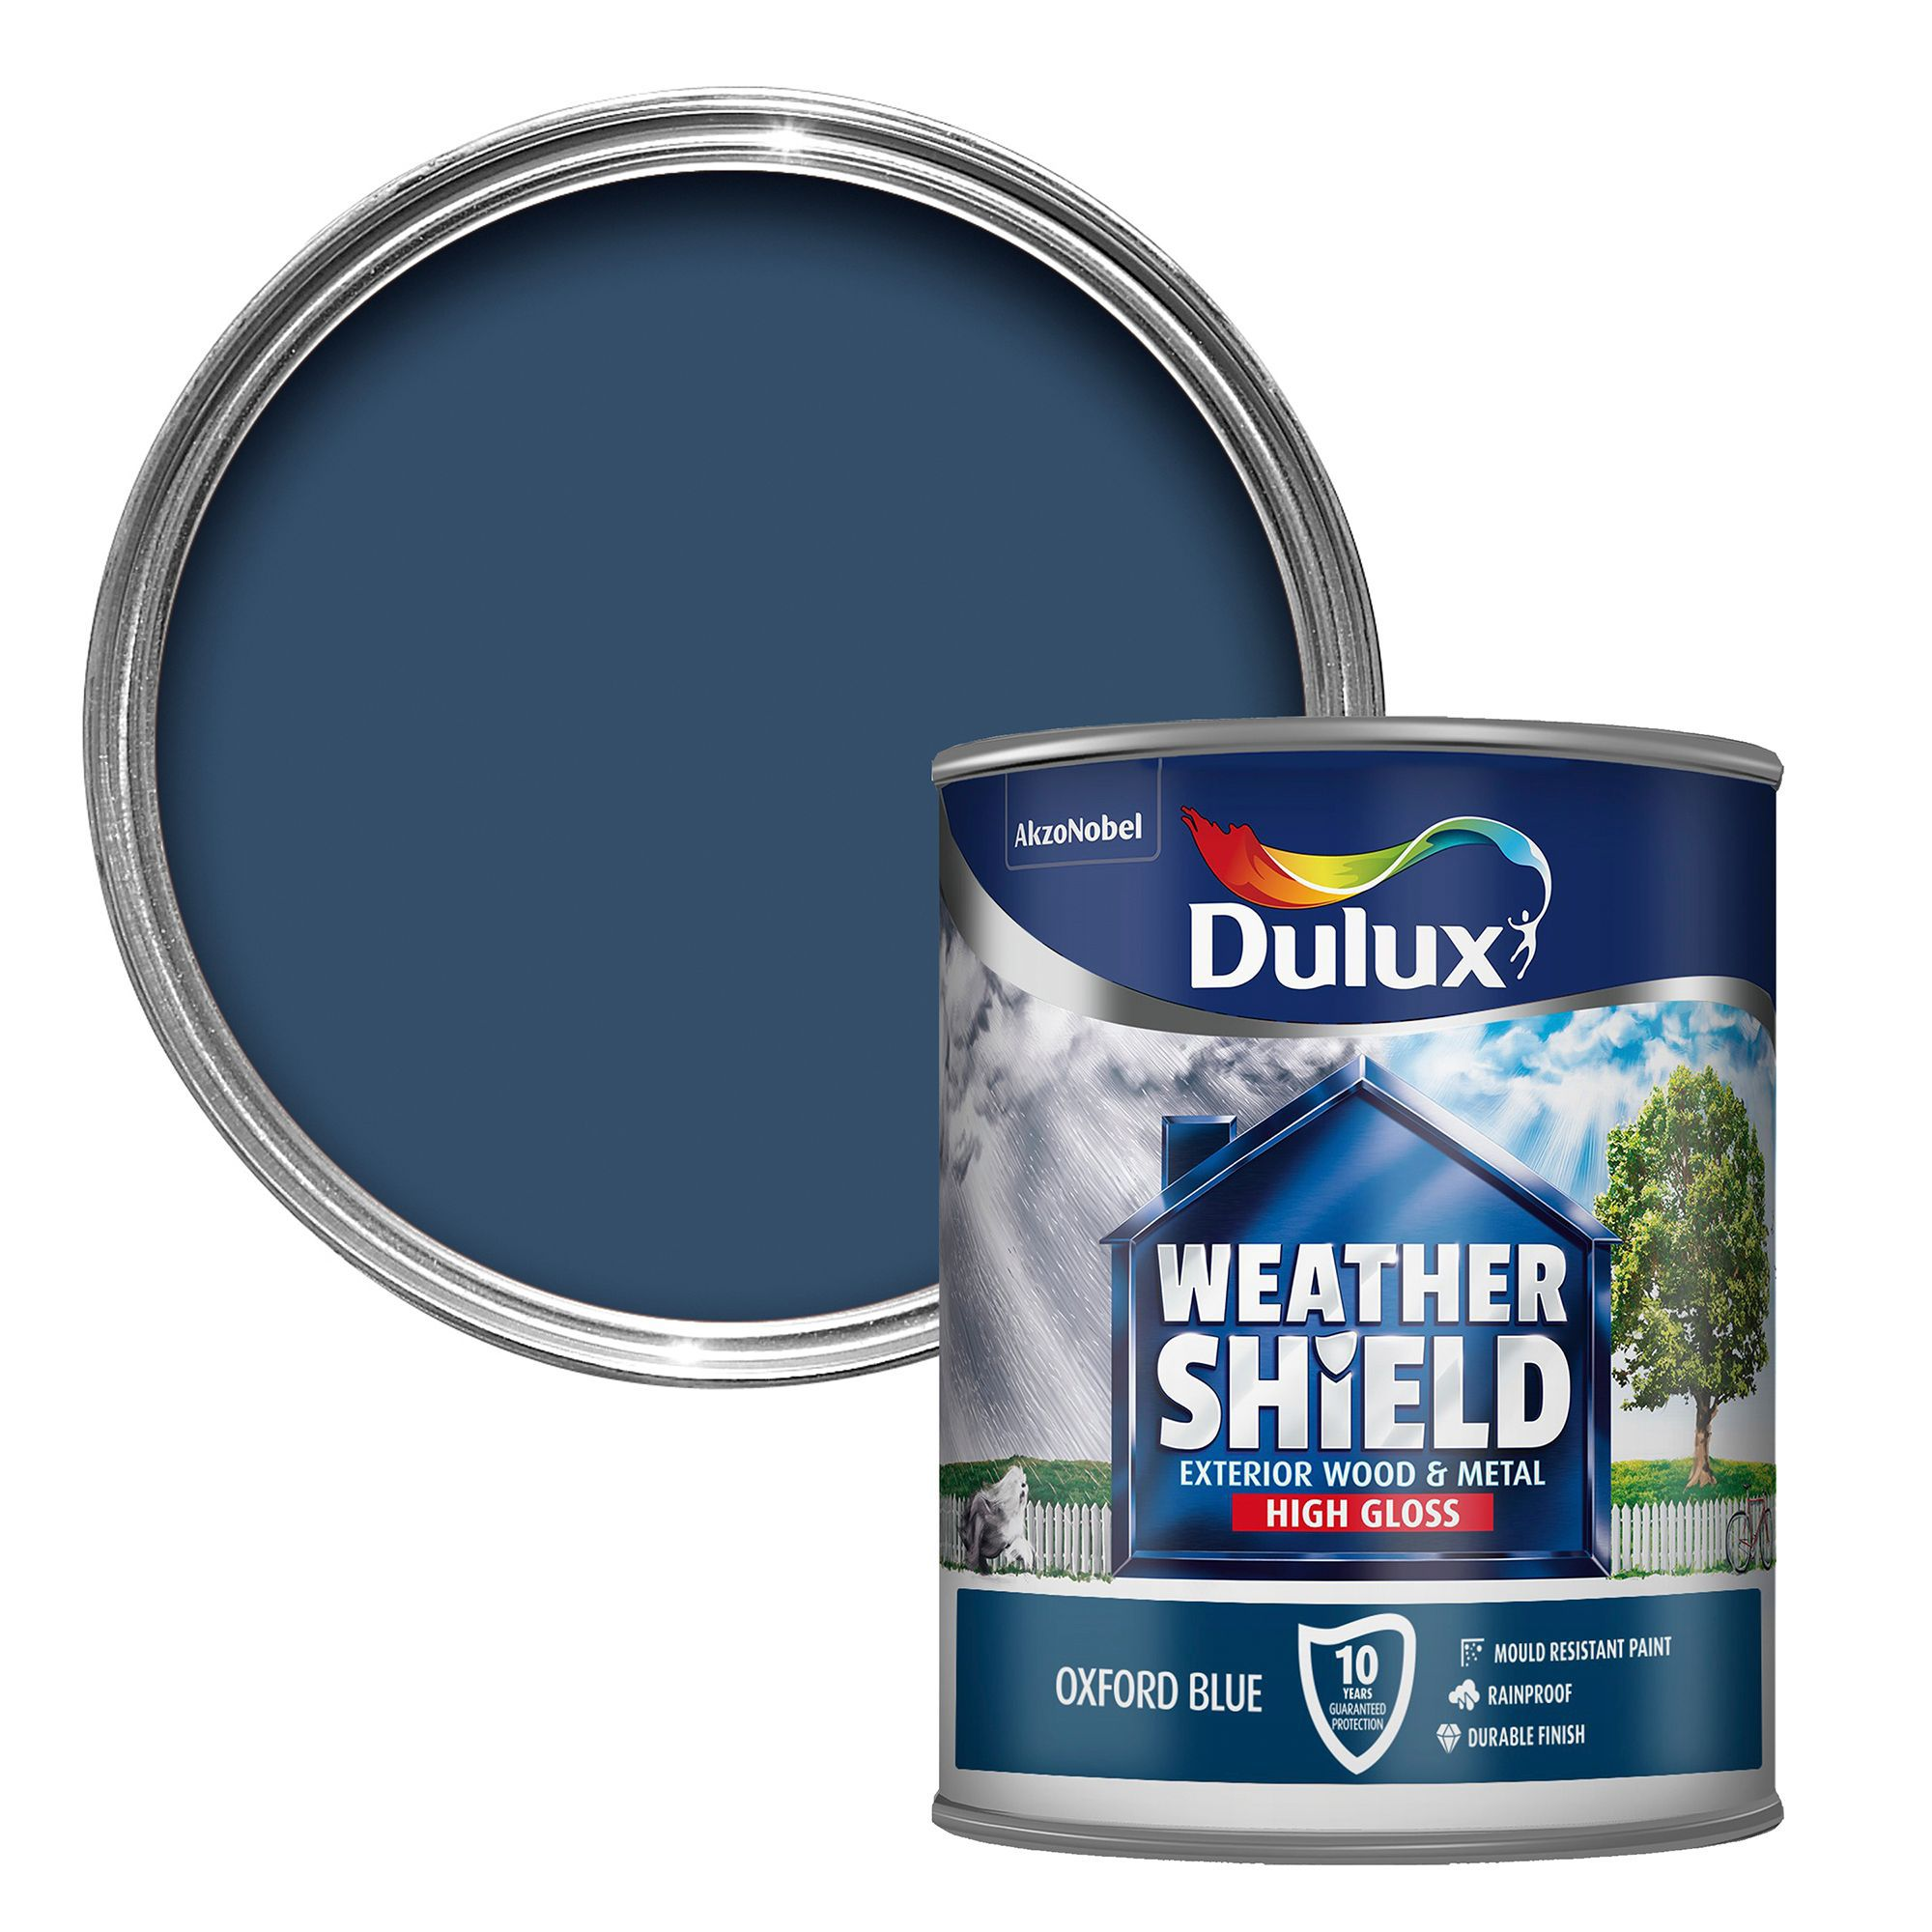 Dulux weathershield exterior oxford blue gloss wood metal paint 750ml departments diy at b q - Exterior wood paint matt pict ...